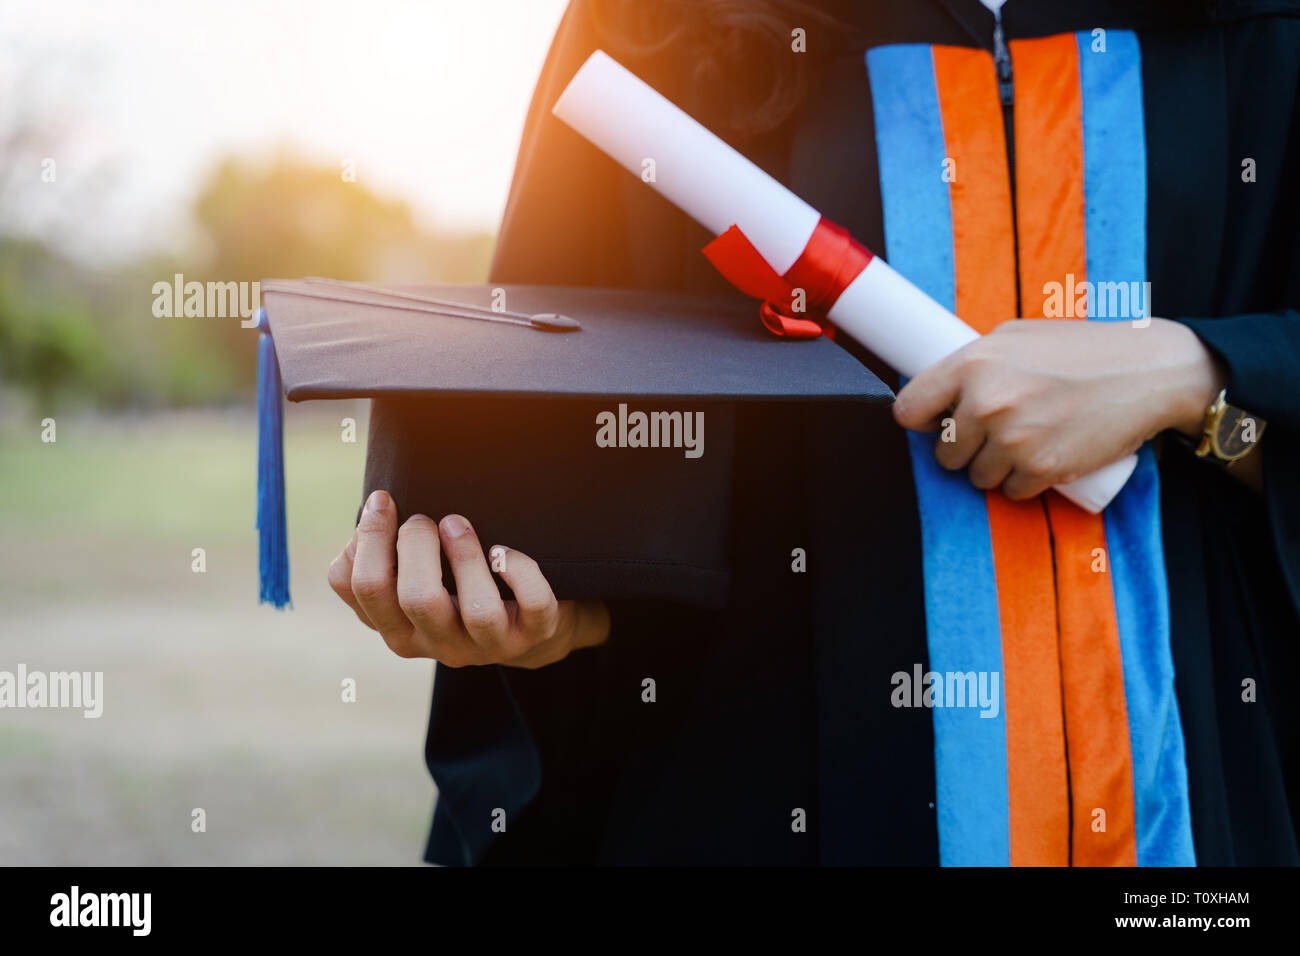 Female university graduate celebrates graduation ceremony receiving degree certificate happily with excitement. - Stock Image